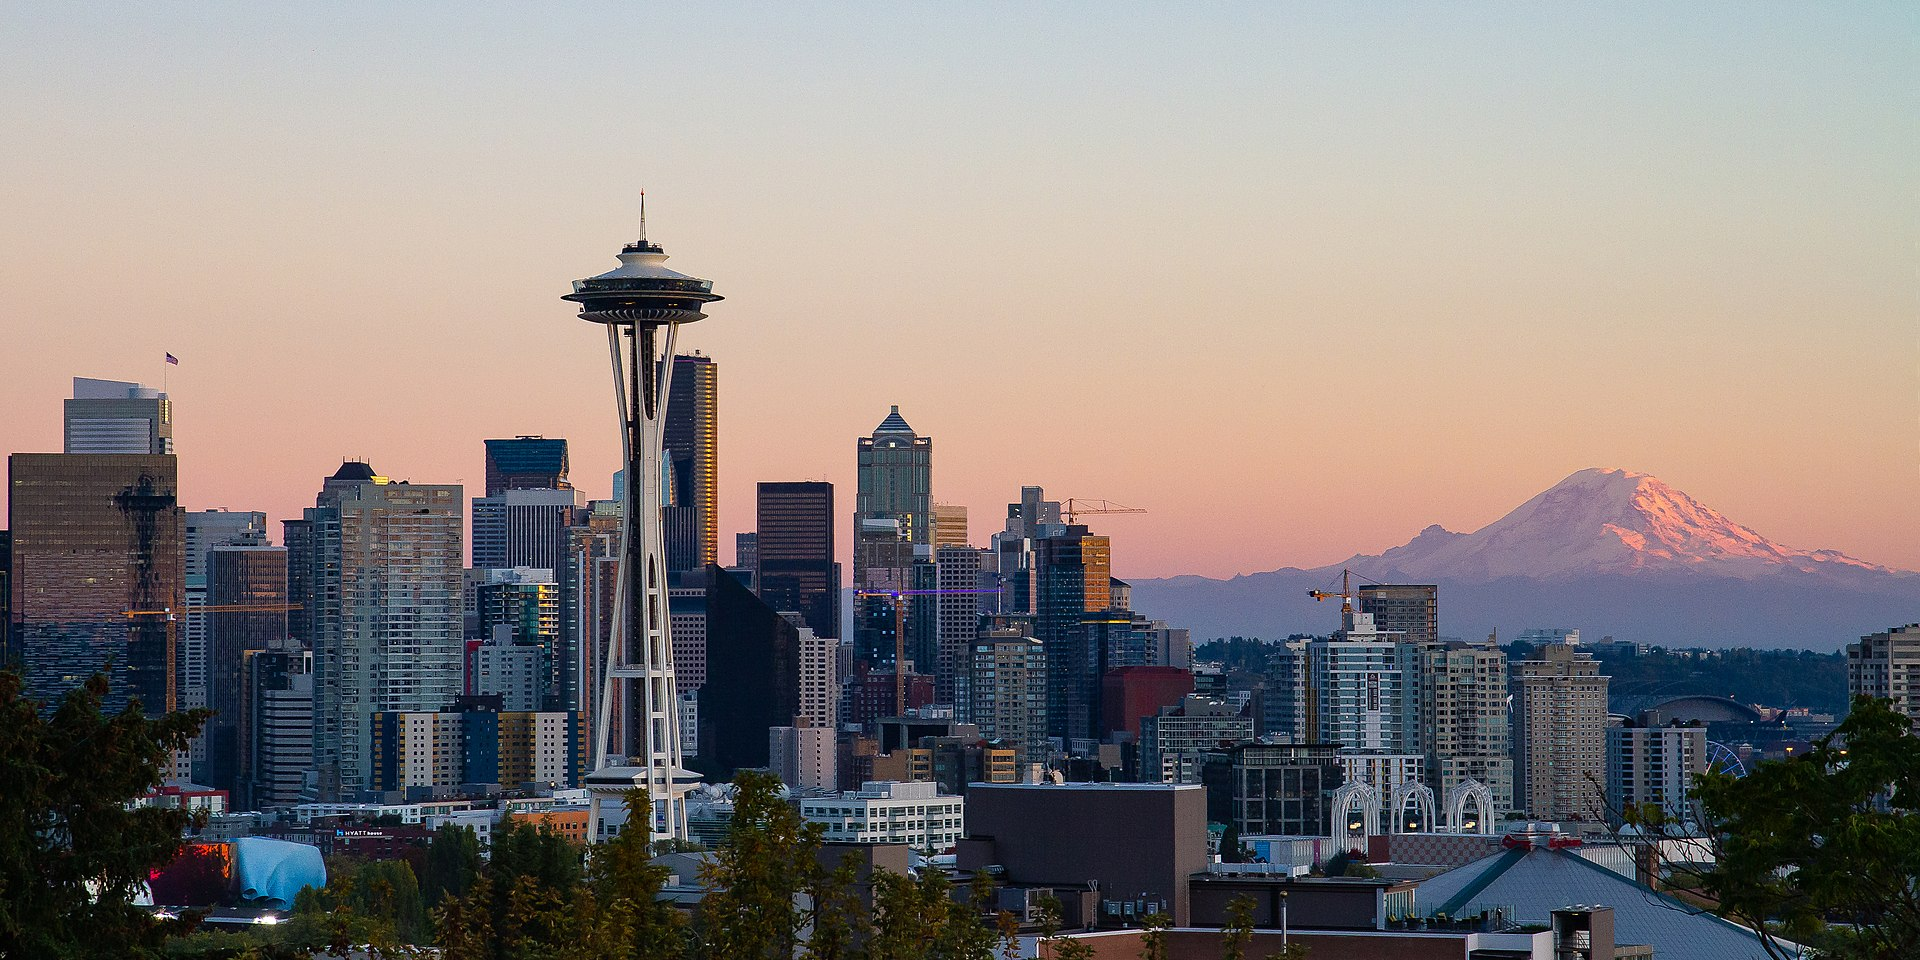 We aare cash buyers for homes all over the Seattle area